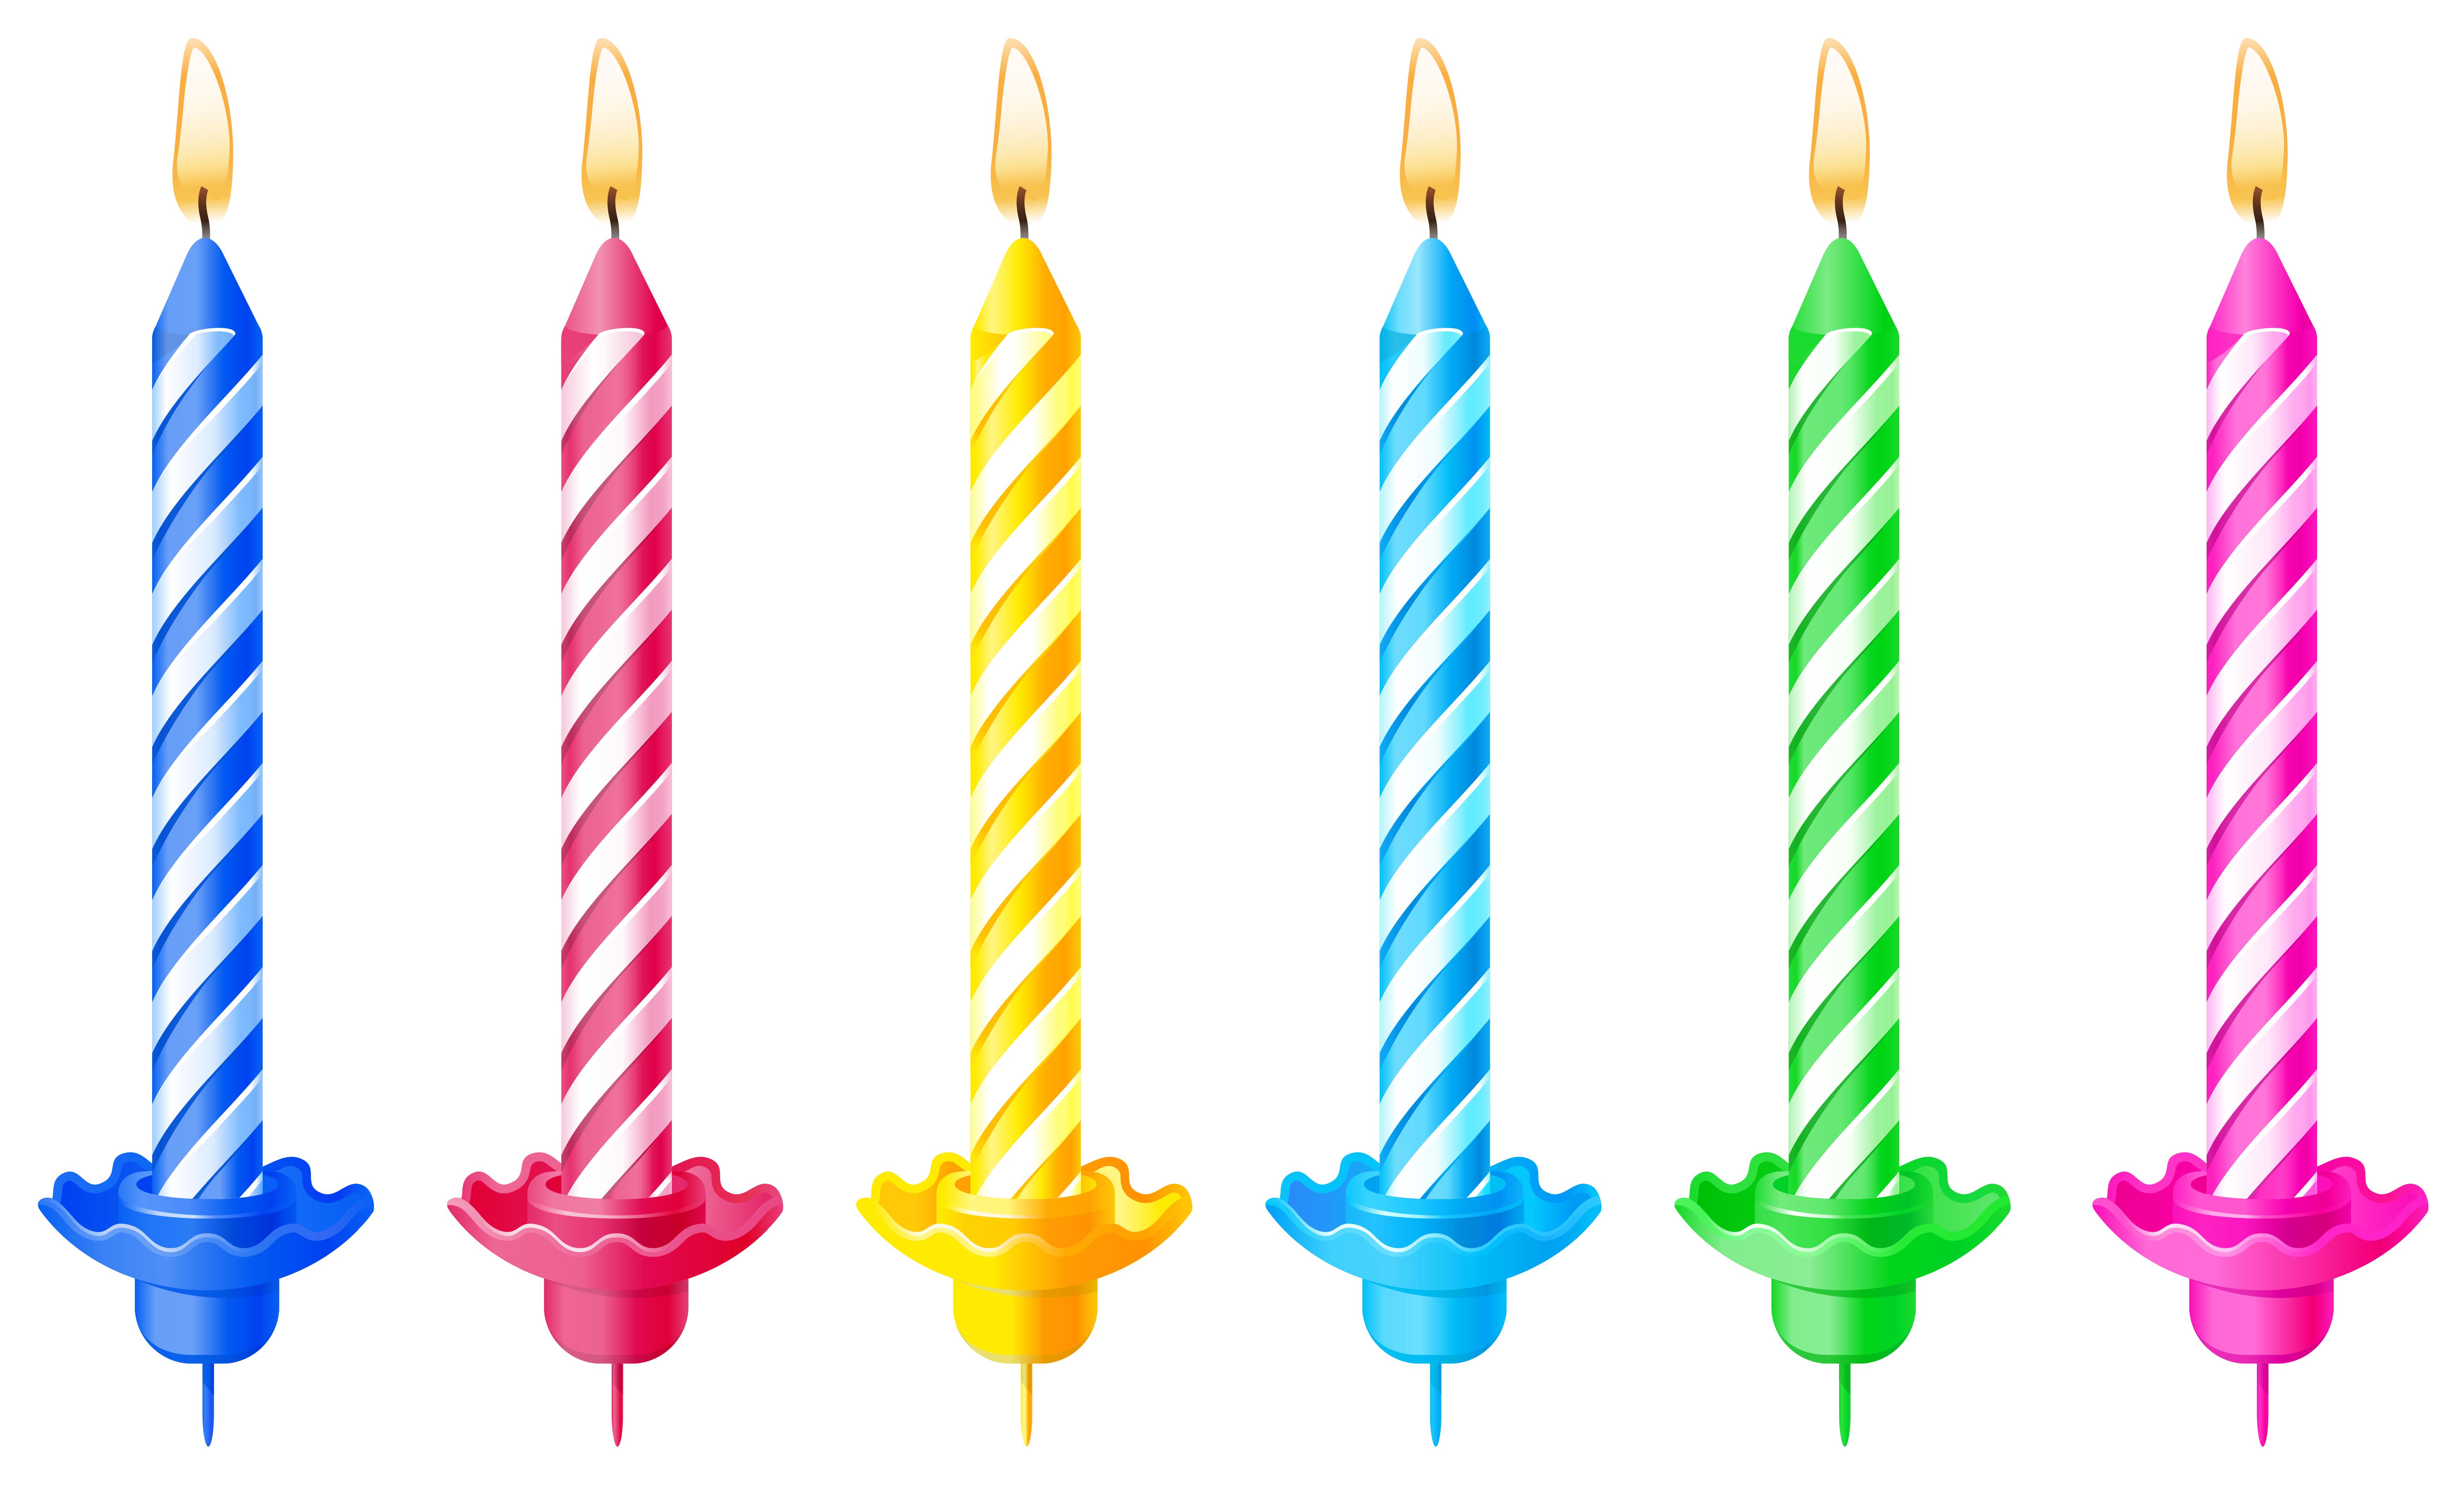 Birthday Candles Colorful Cut Out Png